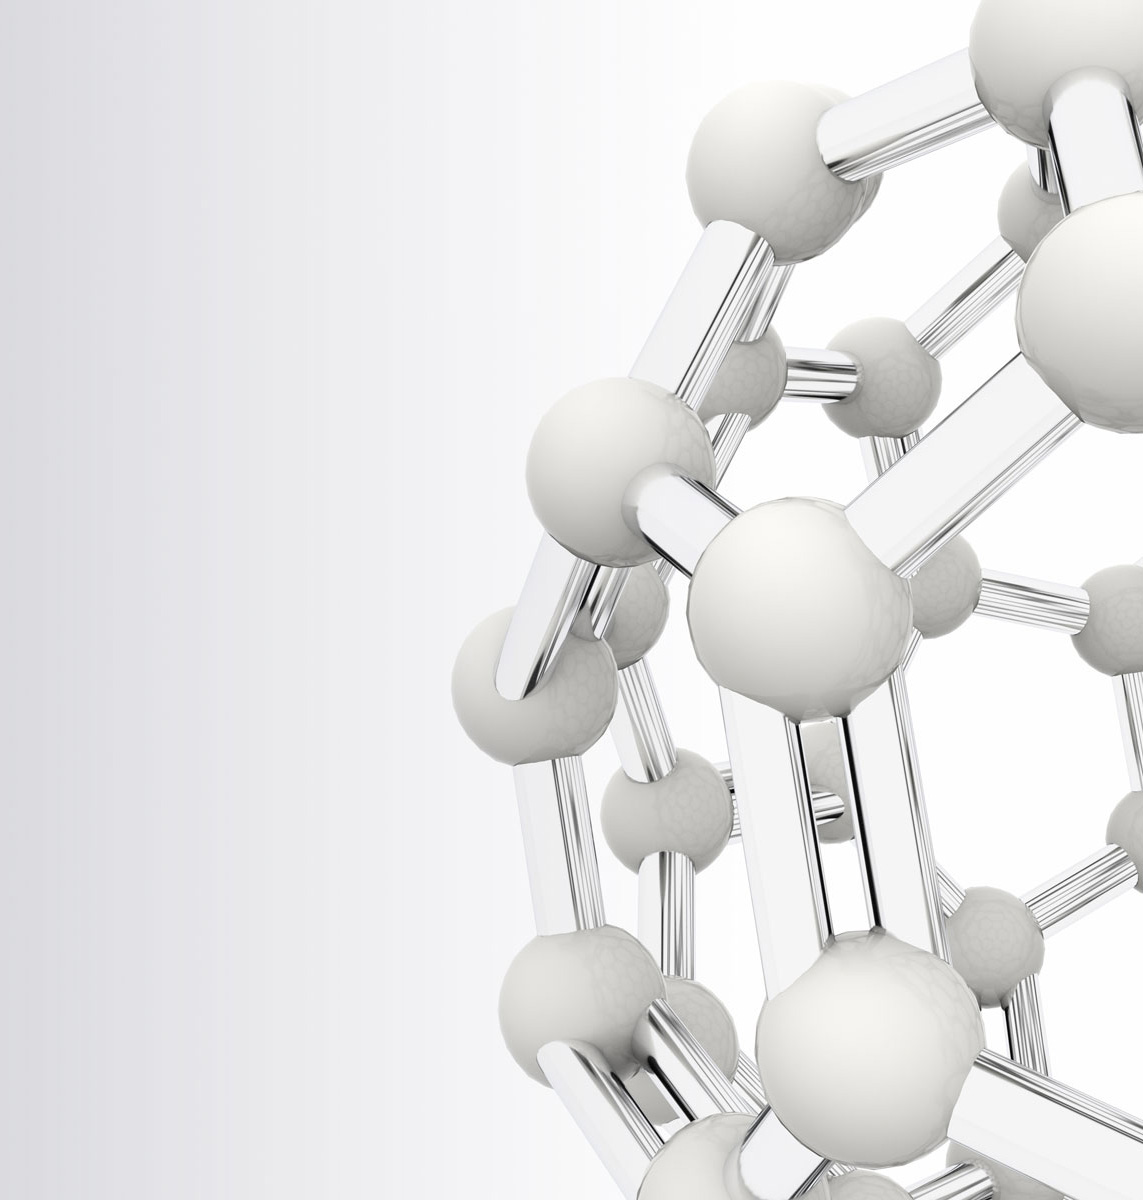 White molecules as a symbol for our Clarity on Healthcare